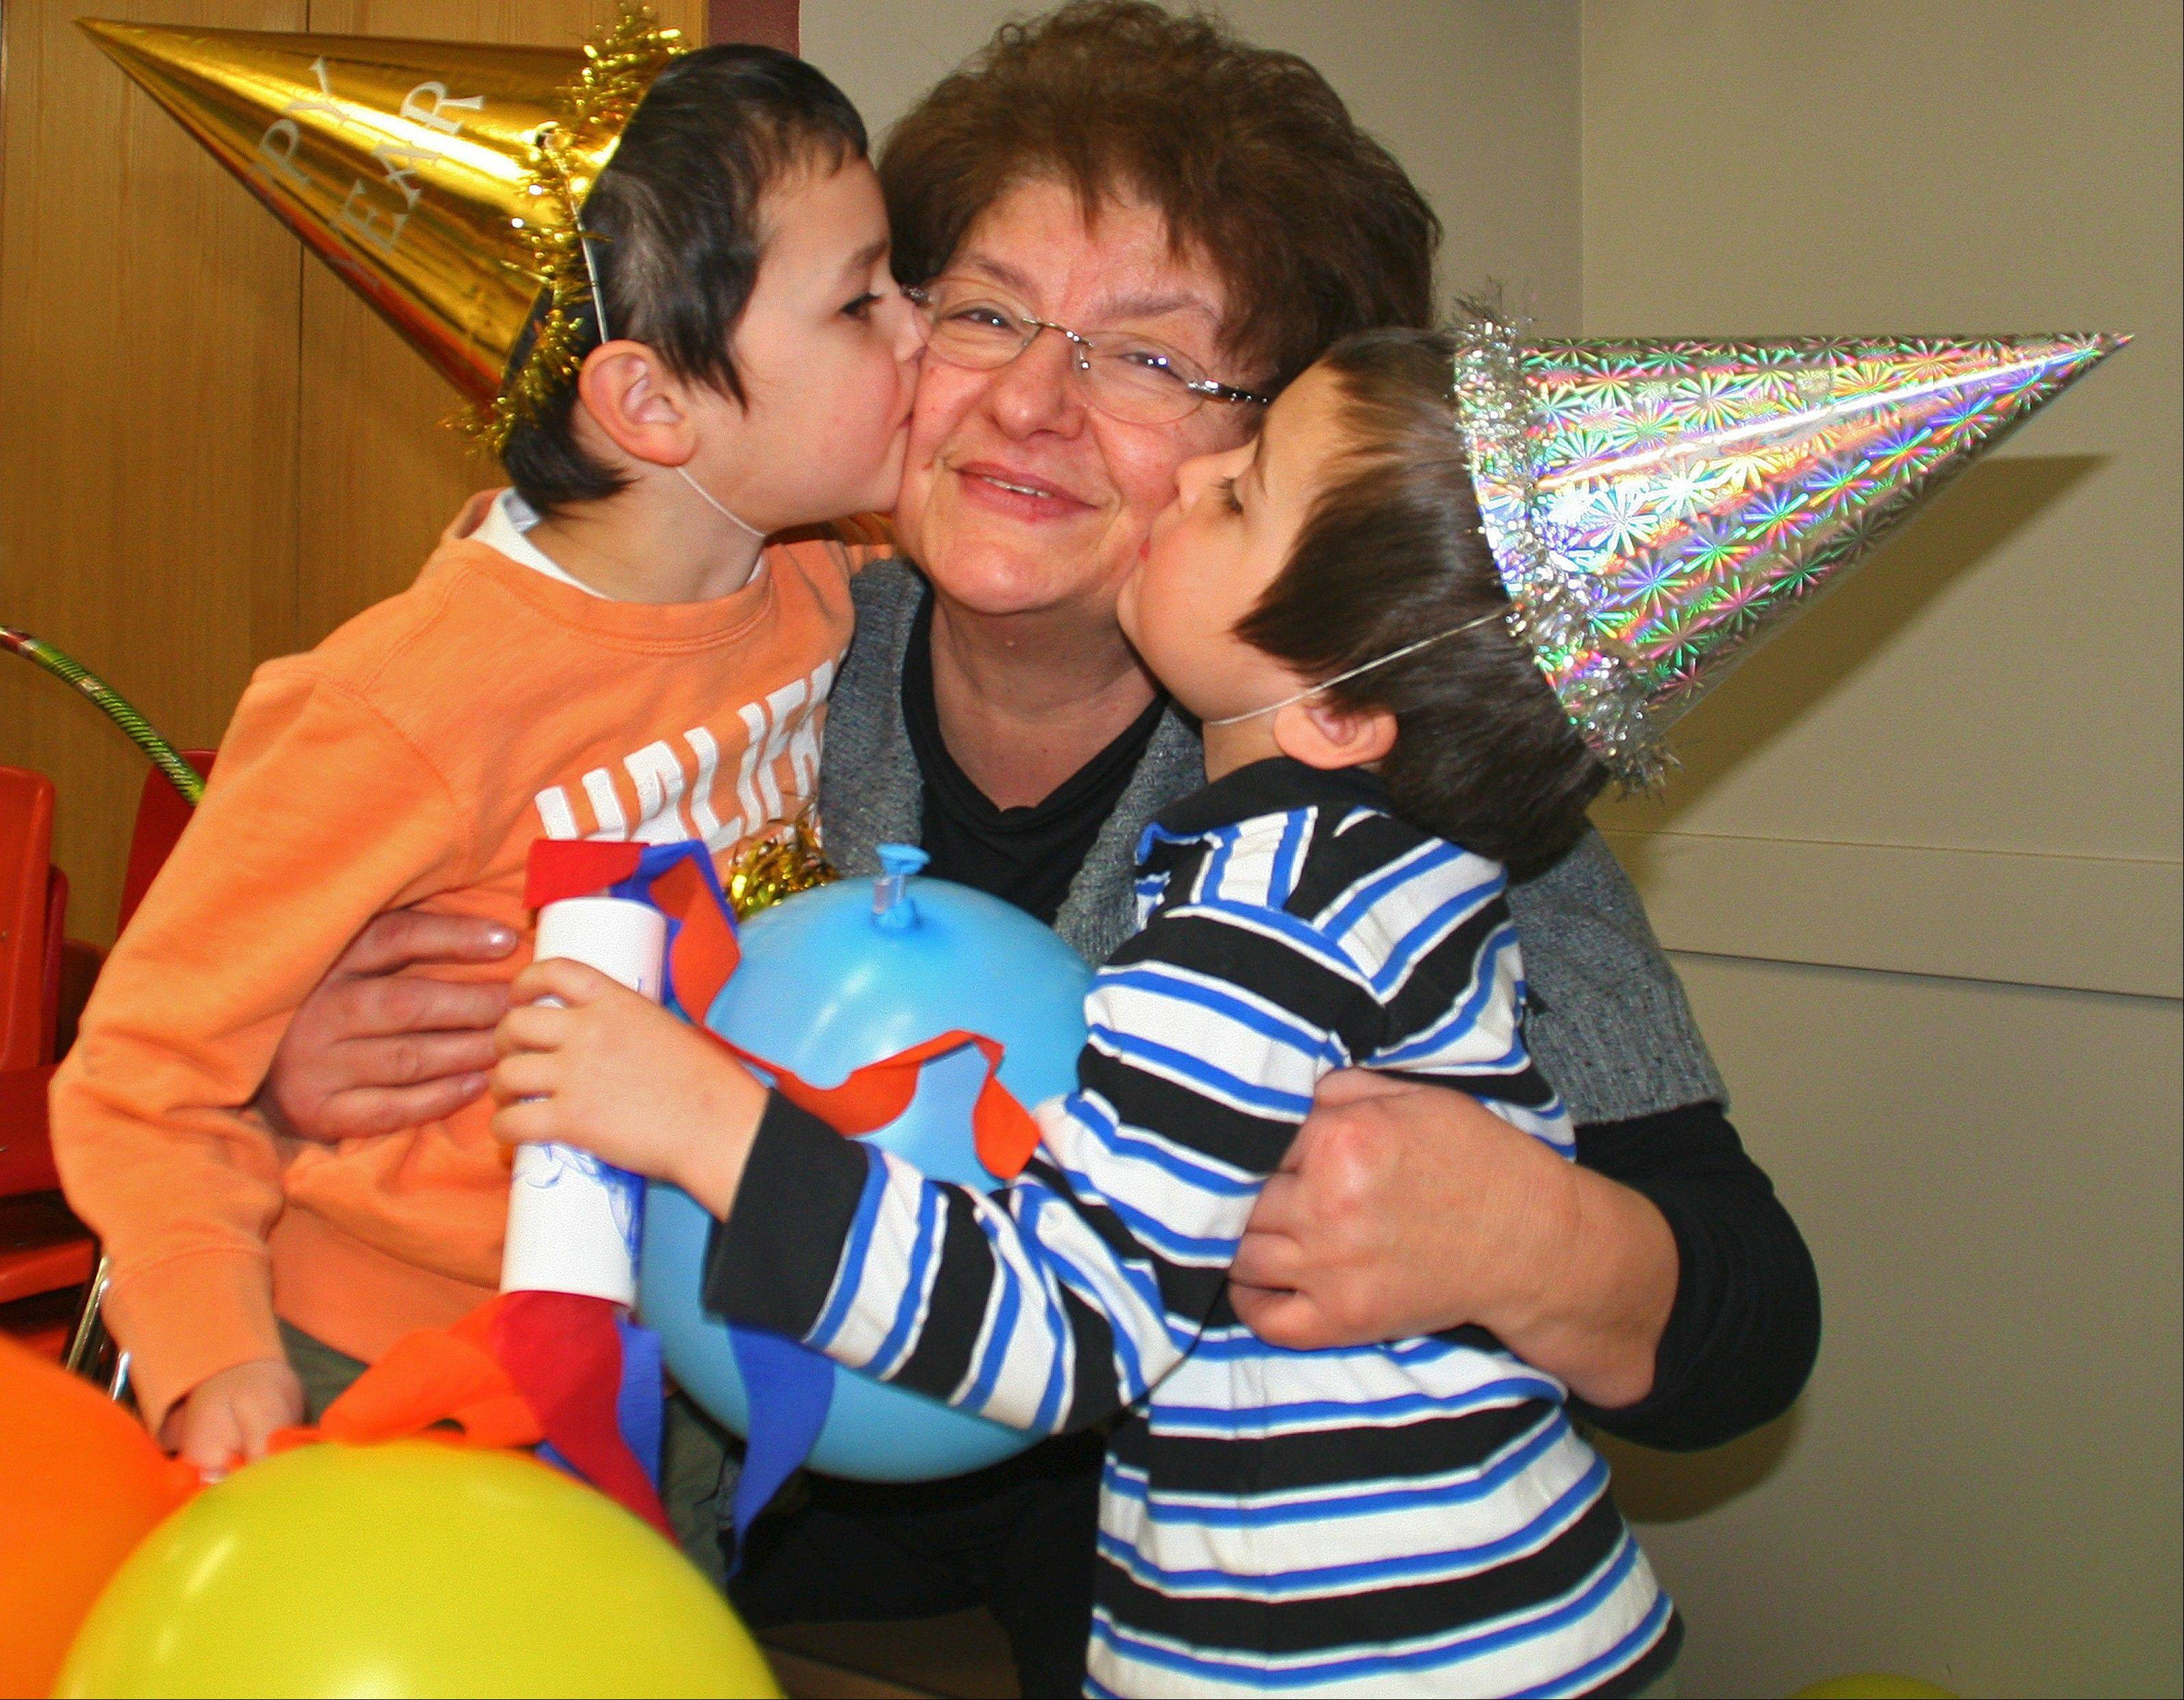 Muharem Sarancic, left, 5, and his brother, Kerim, 3, kiss their grandmother Azra at the stroke of 12 at the Preschool Noon Year's Eve party on Dec. 31, at Prairie Lakes Community Center.